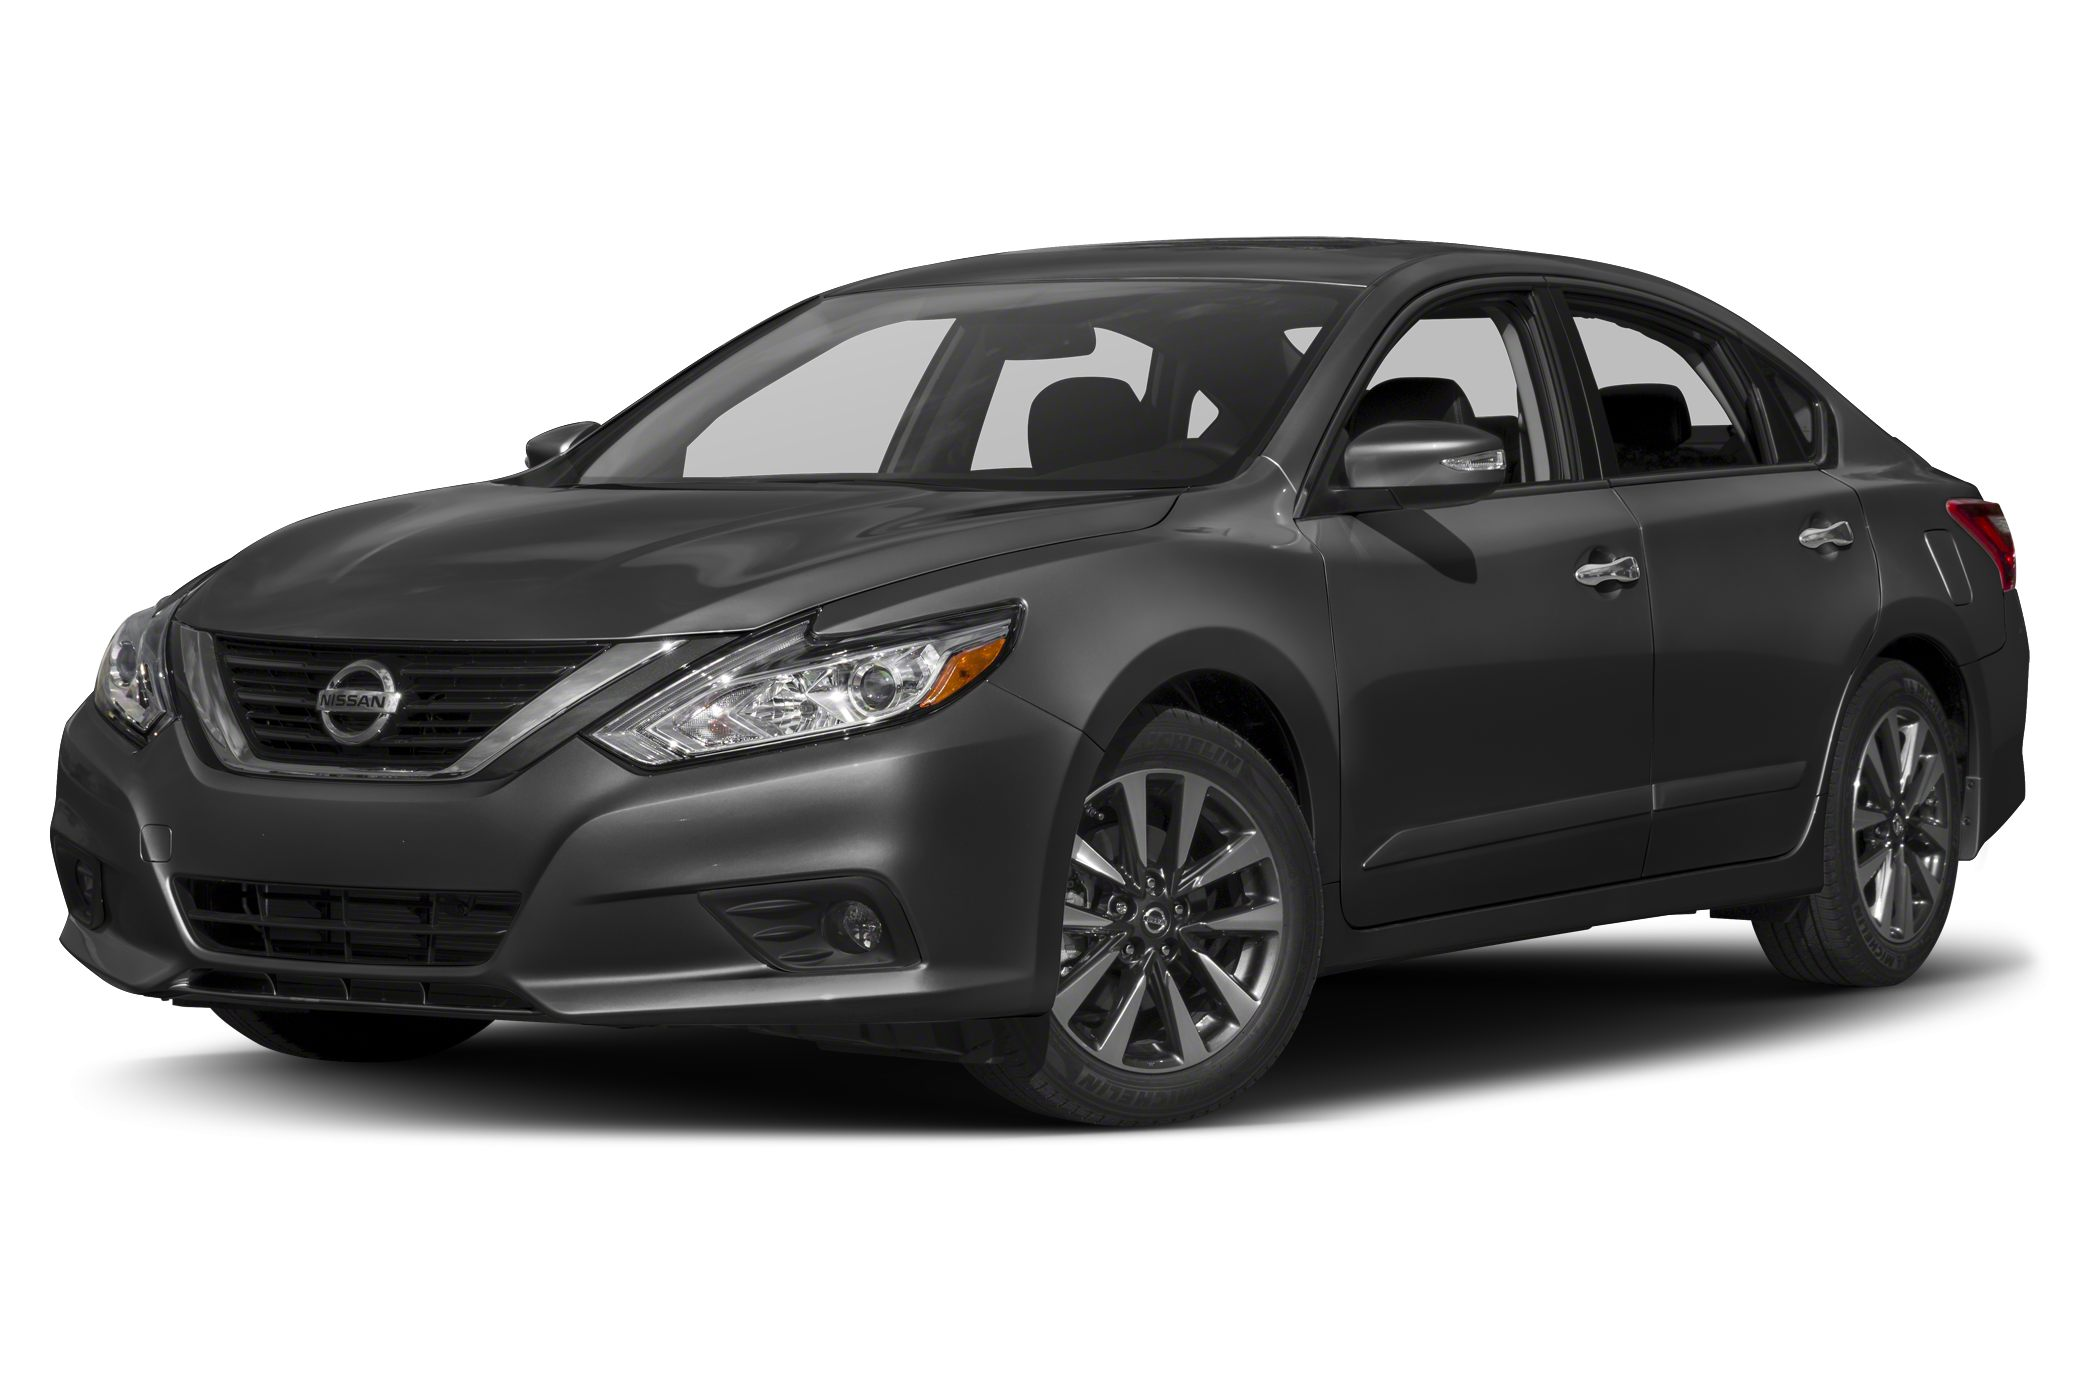 2017 Nissan Altima Reviews Specs And Prices Cars Com